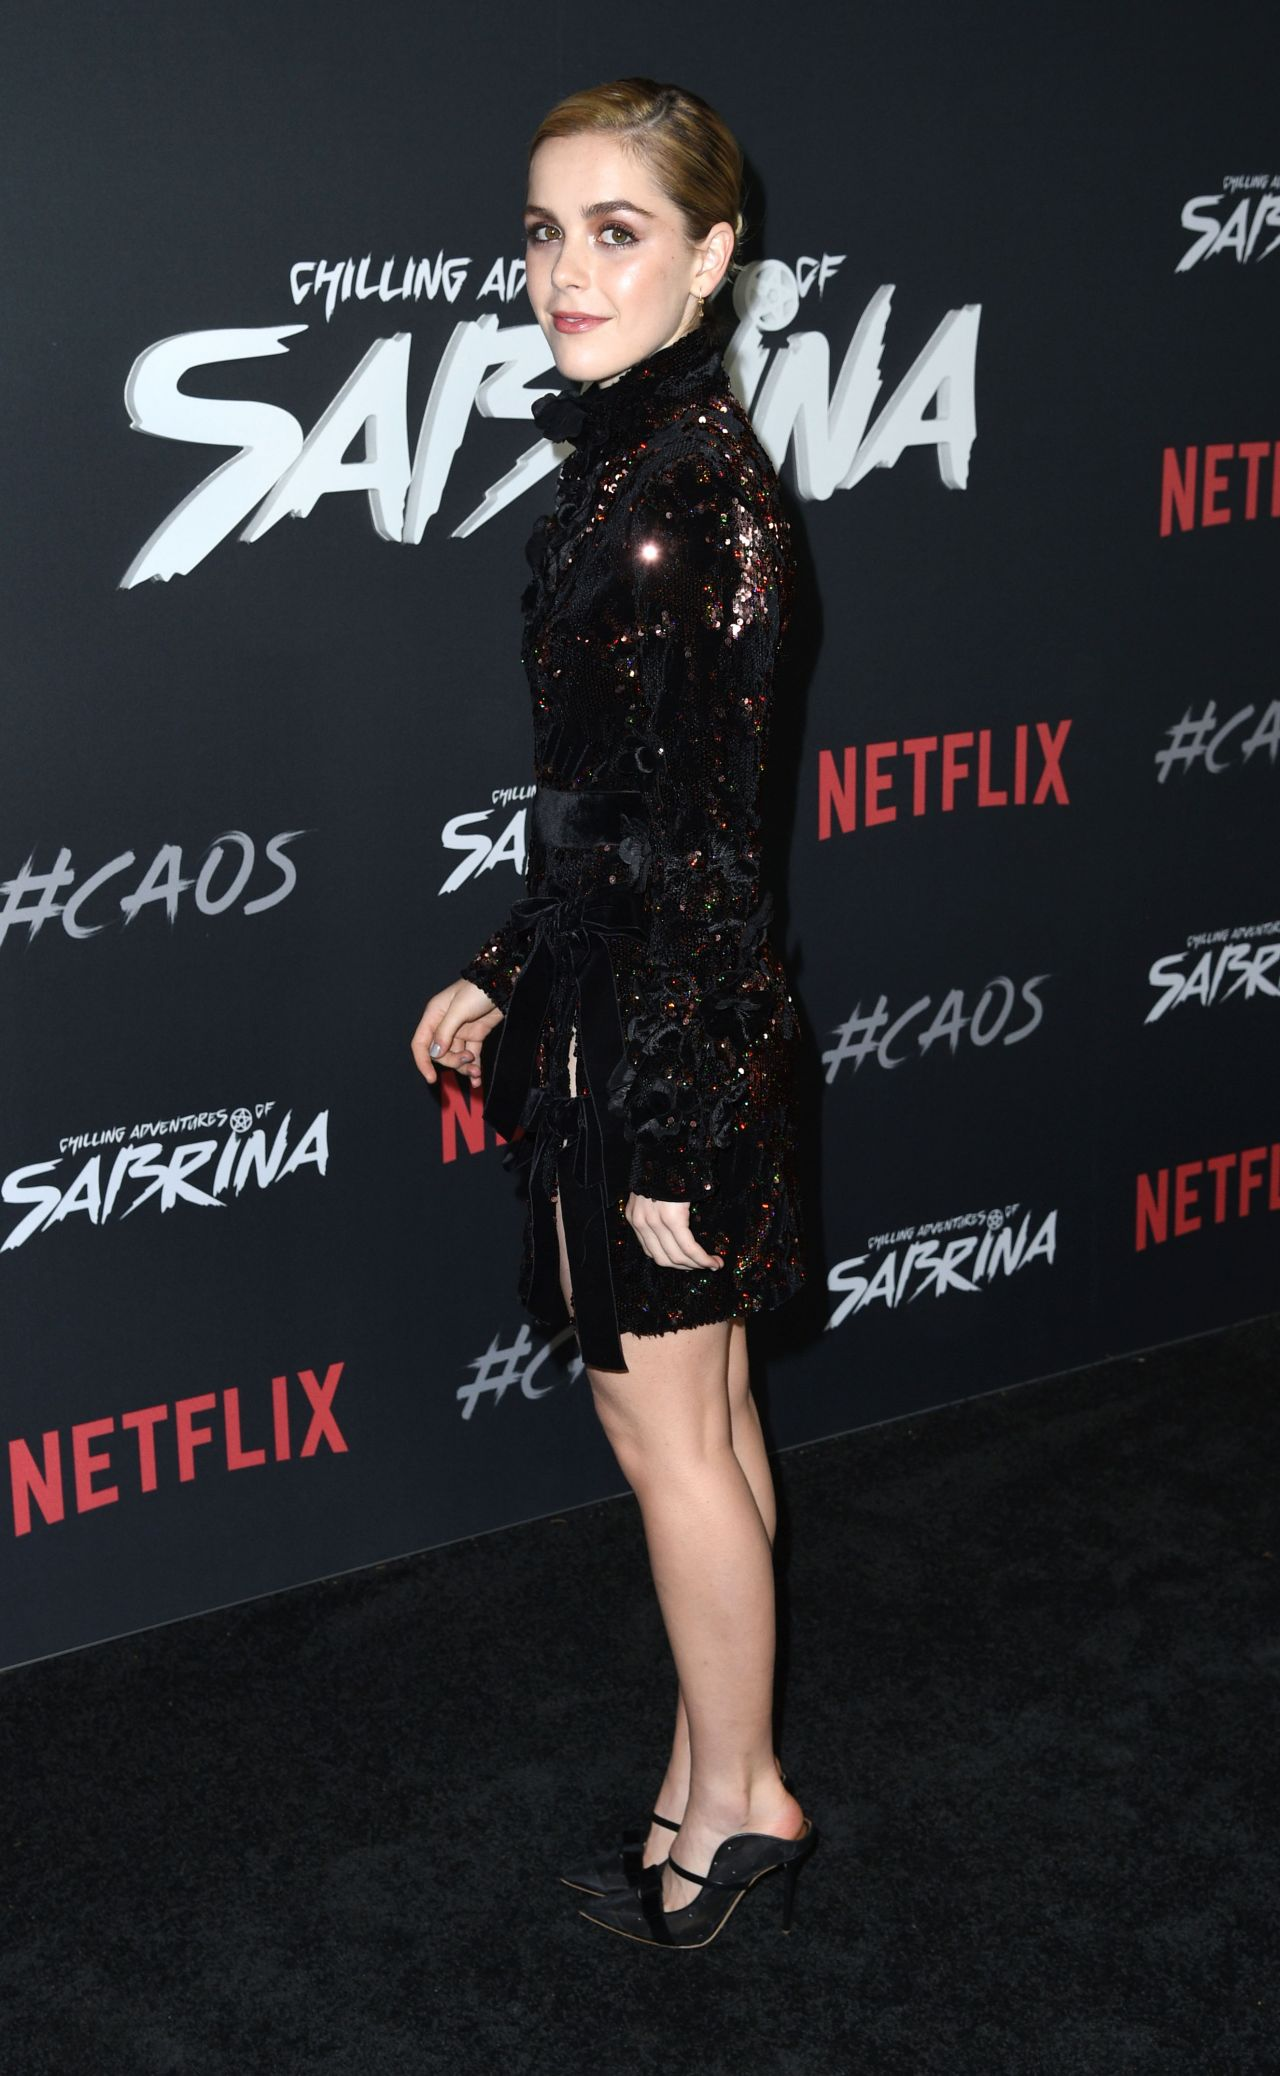 Kiernan Shipka The Chilling Adventures Of Sabrina